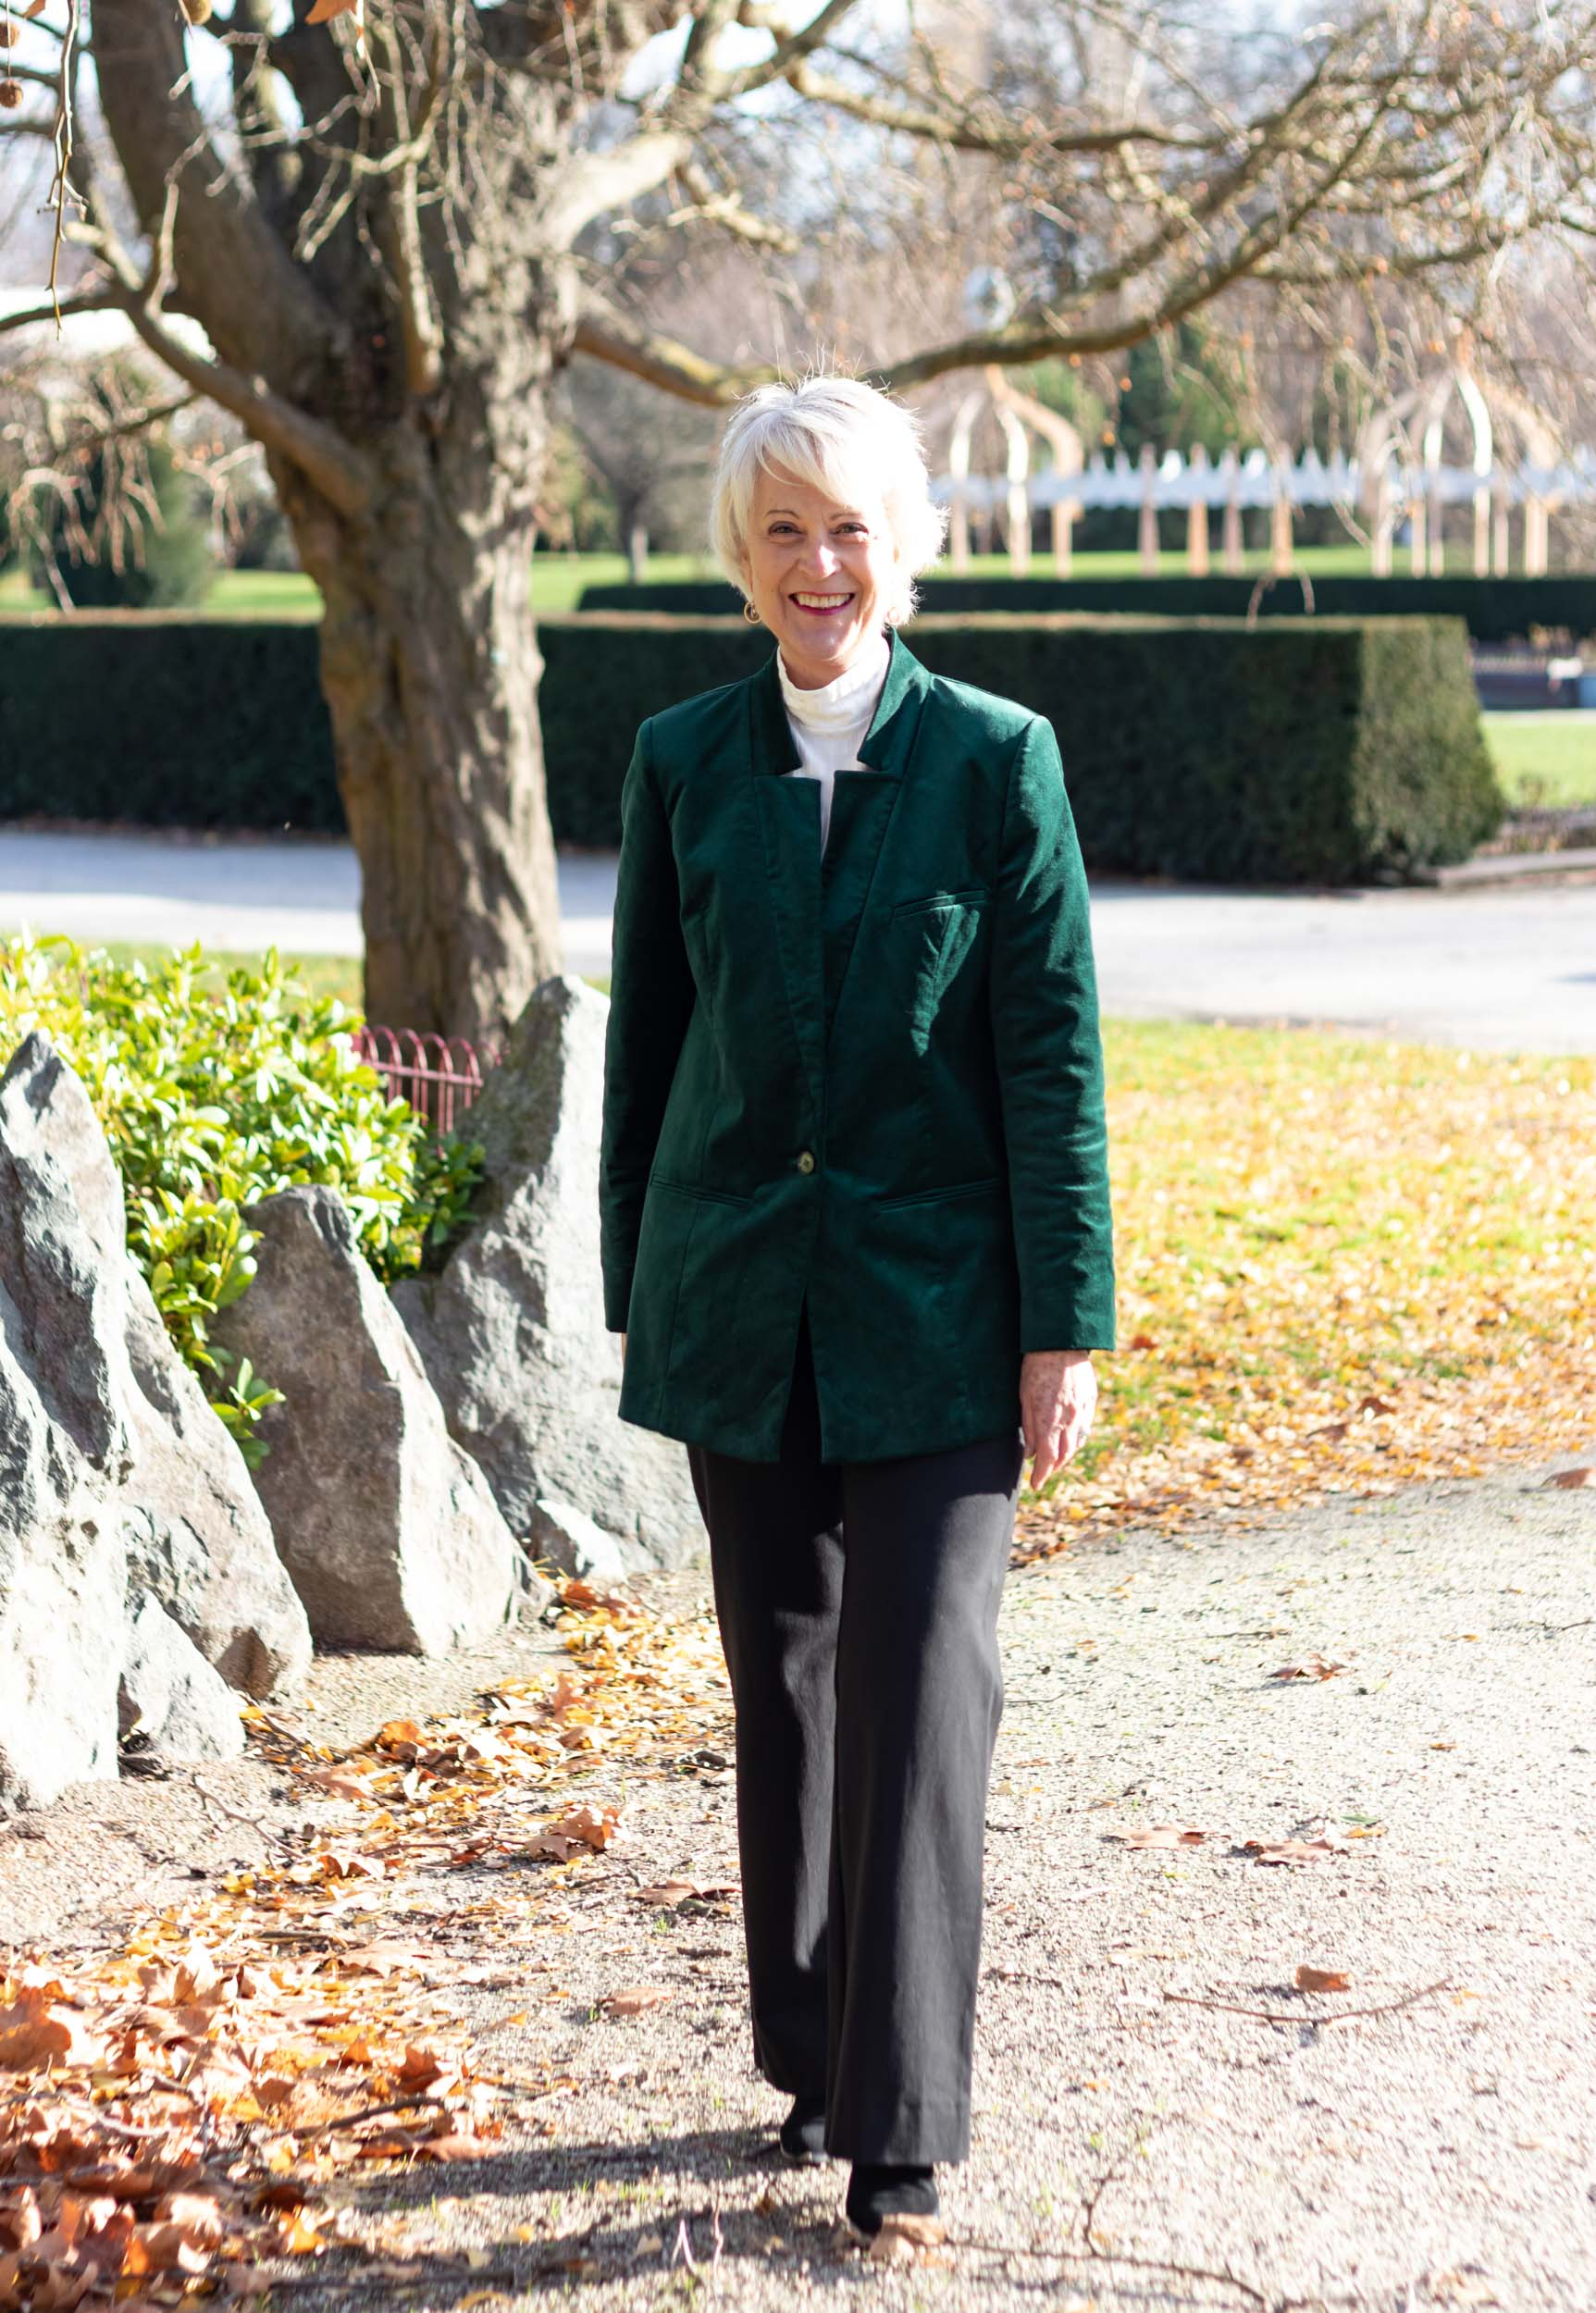 Velvet Jackets Look So Rich And Elegant Chic At Any Age